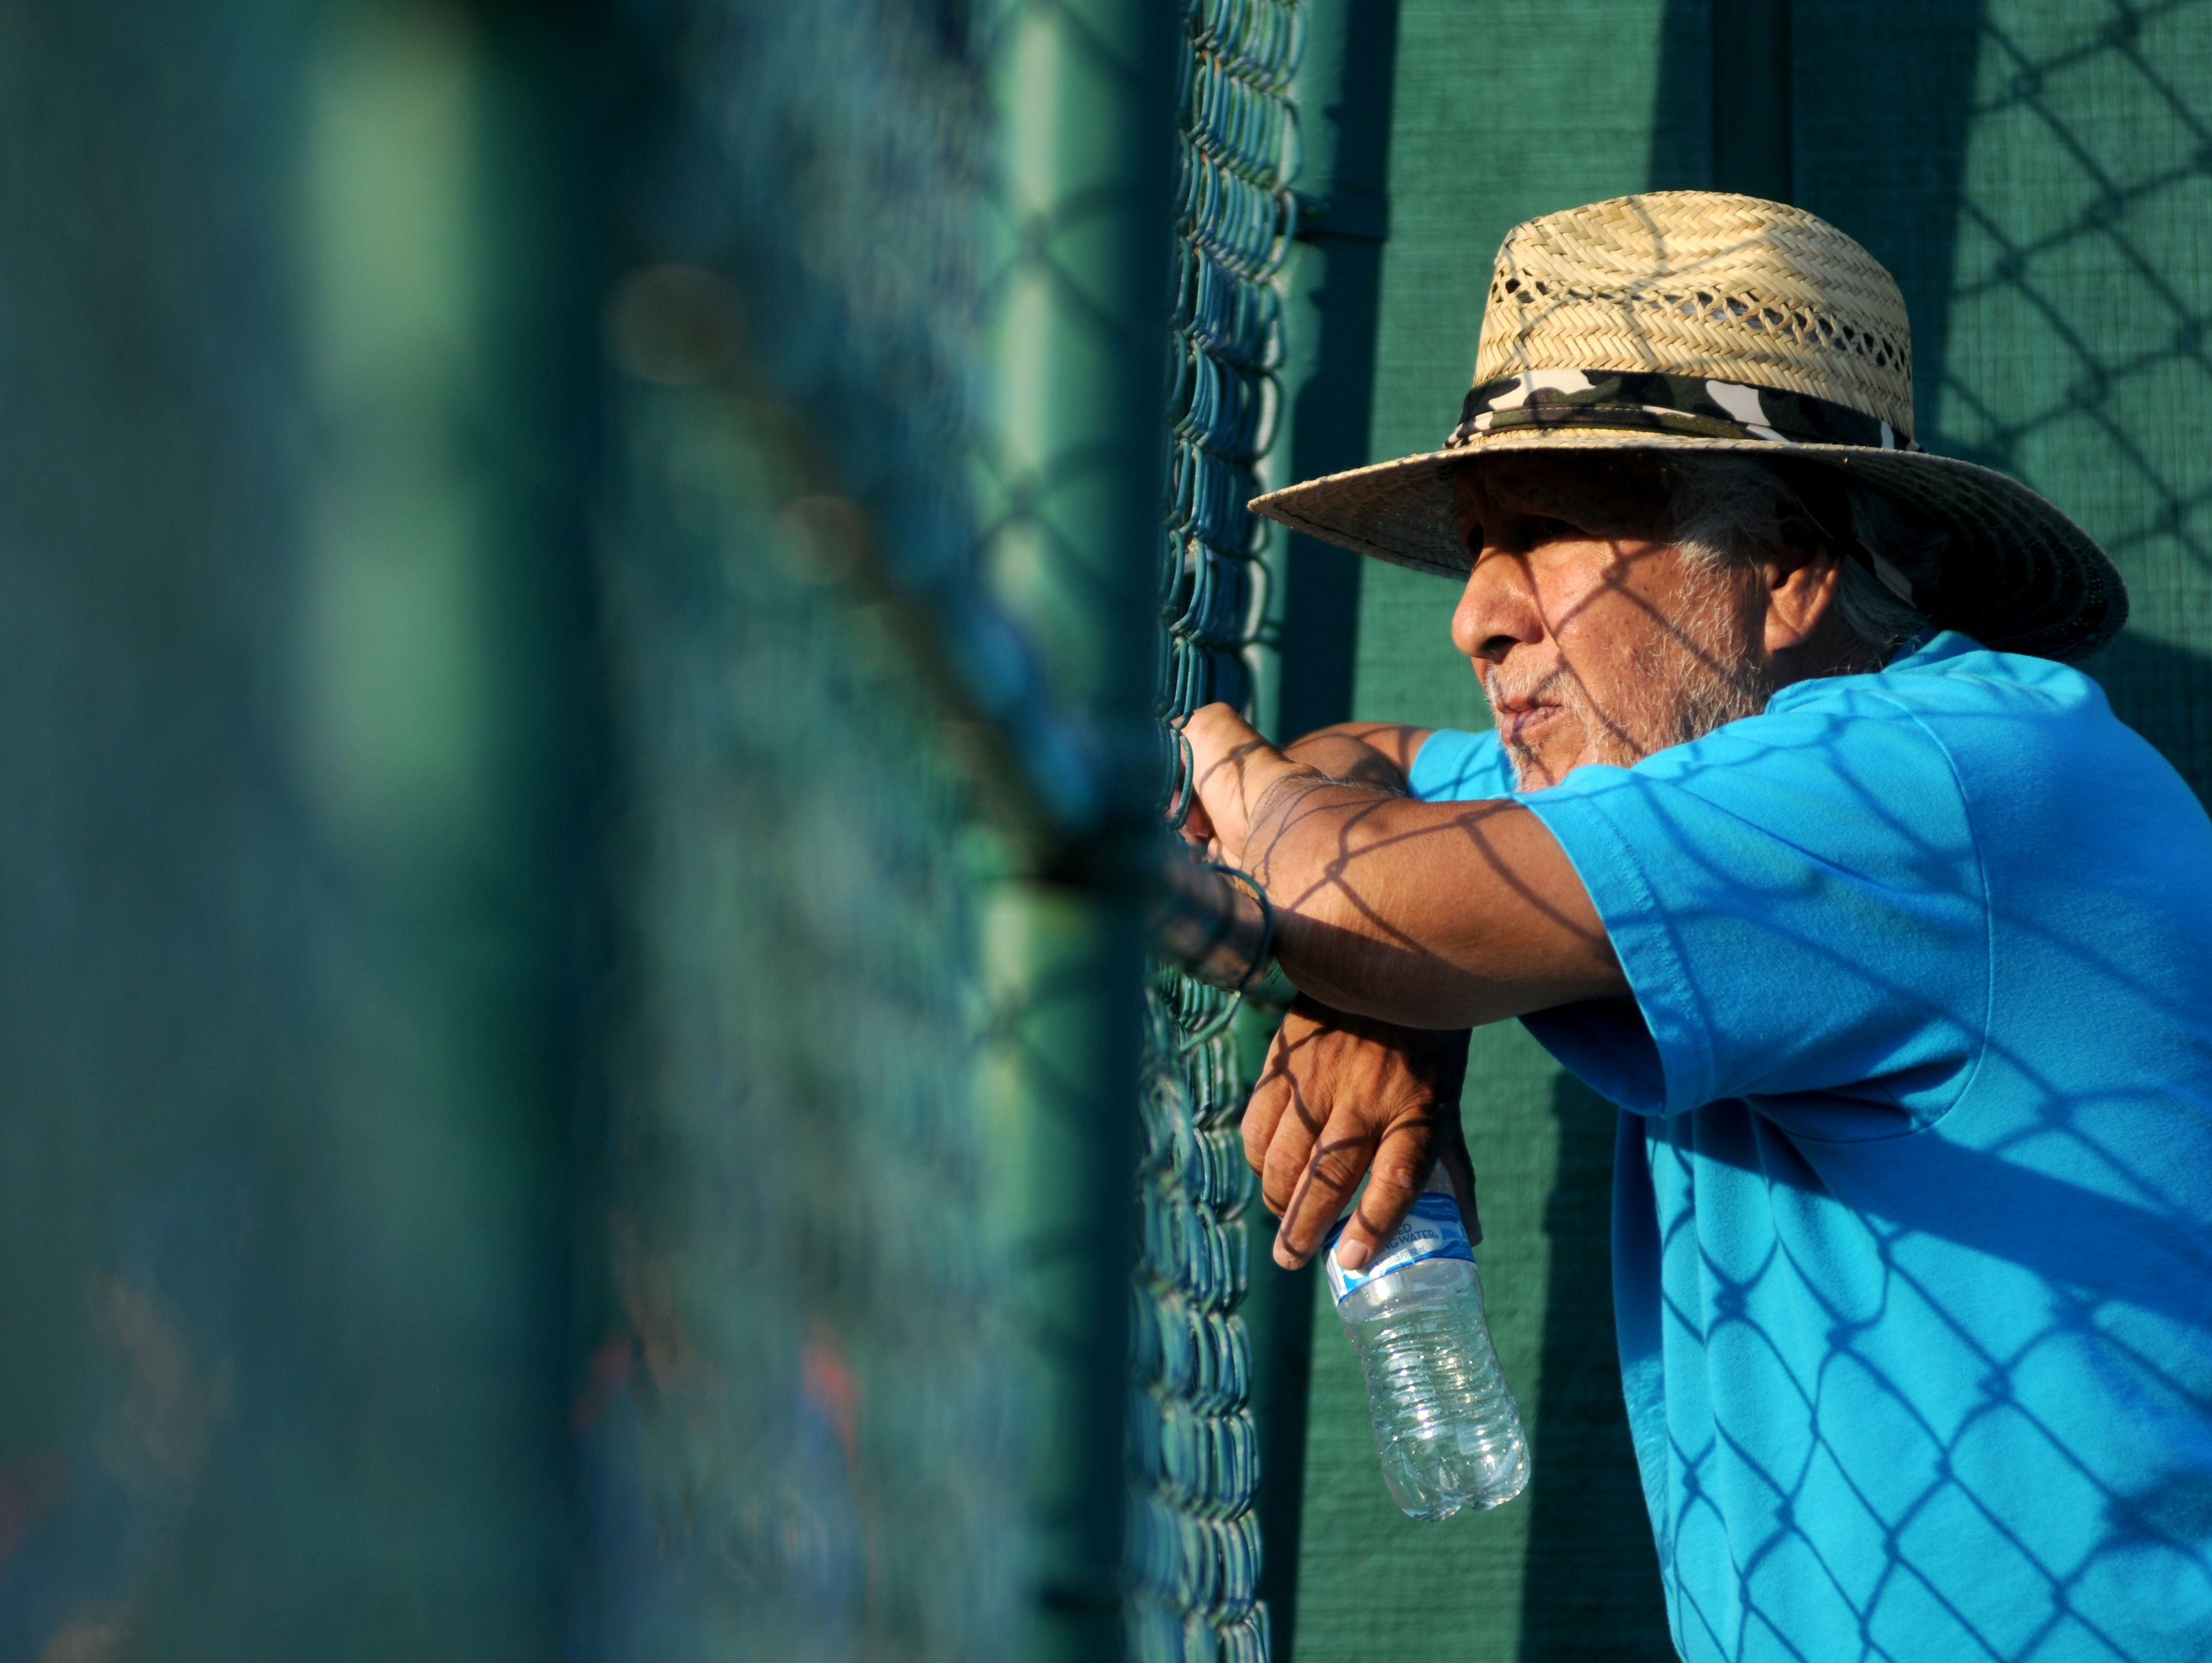 Nacho Ramirez, of Imlay City, watches the game Monday, June 19, during the SC4 Blue Water Area All-Star Game at Sanborn Park. Ramirez's son Orlando was playing for the Blue Team.